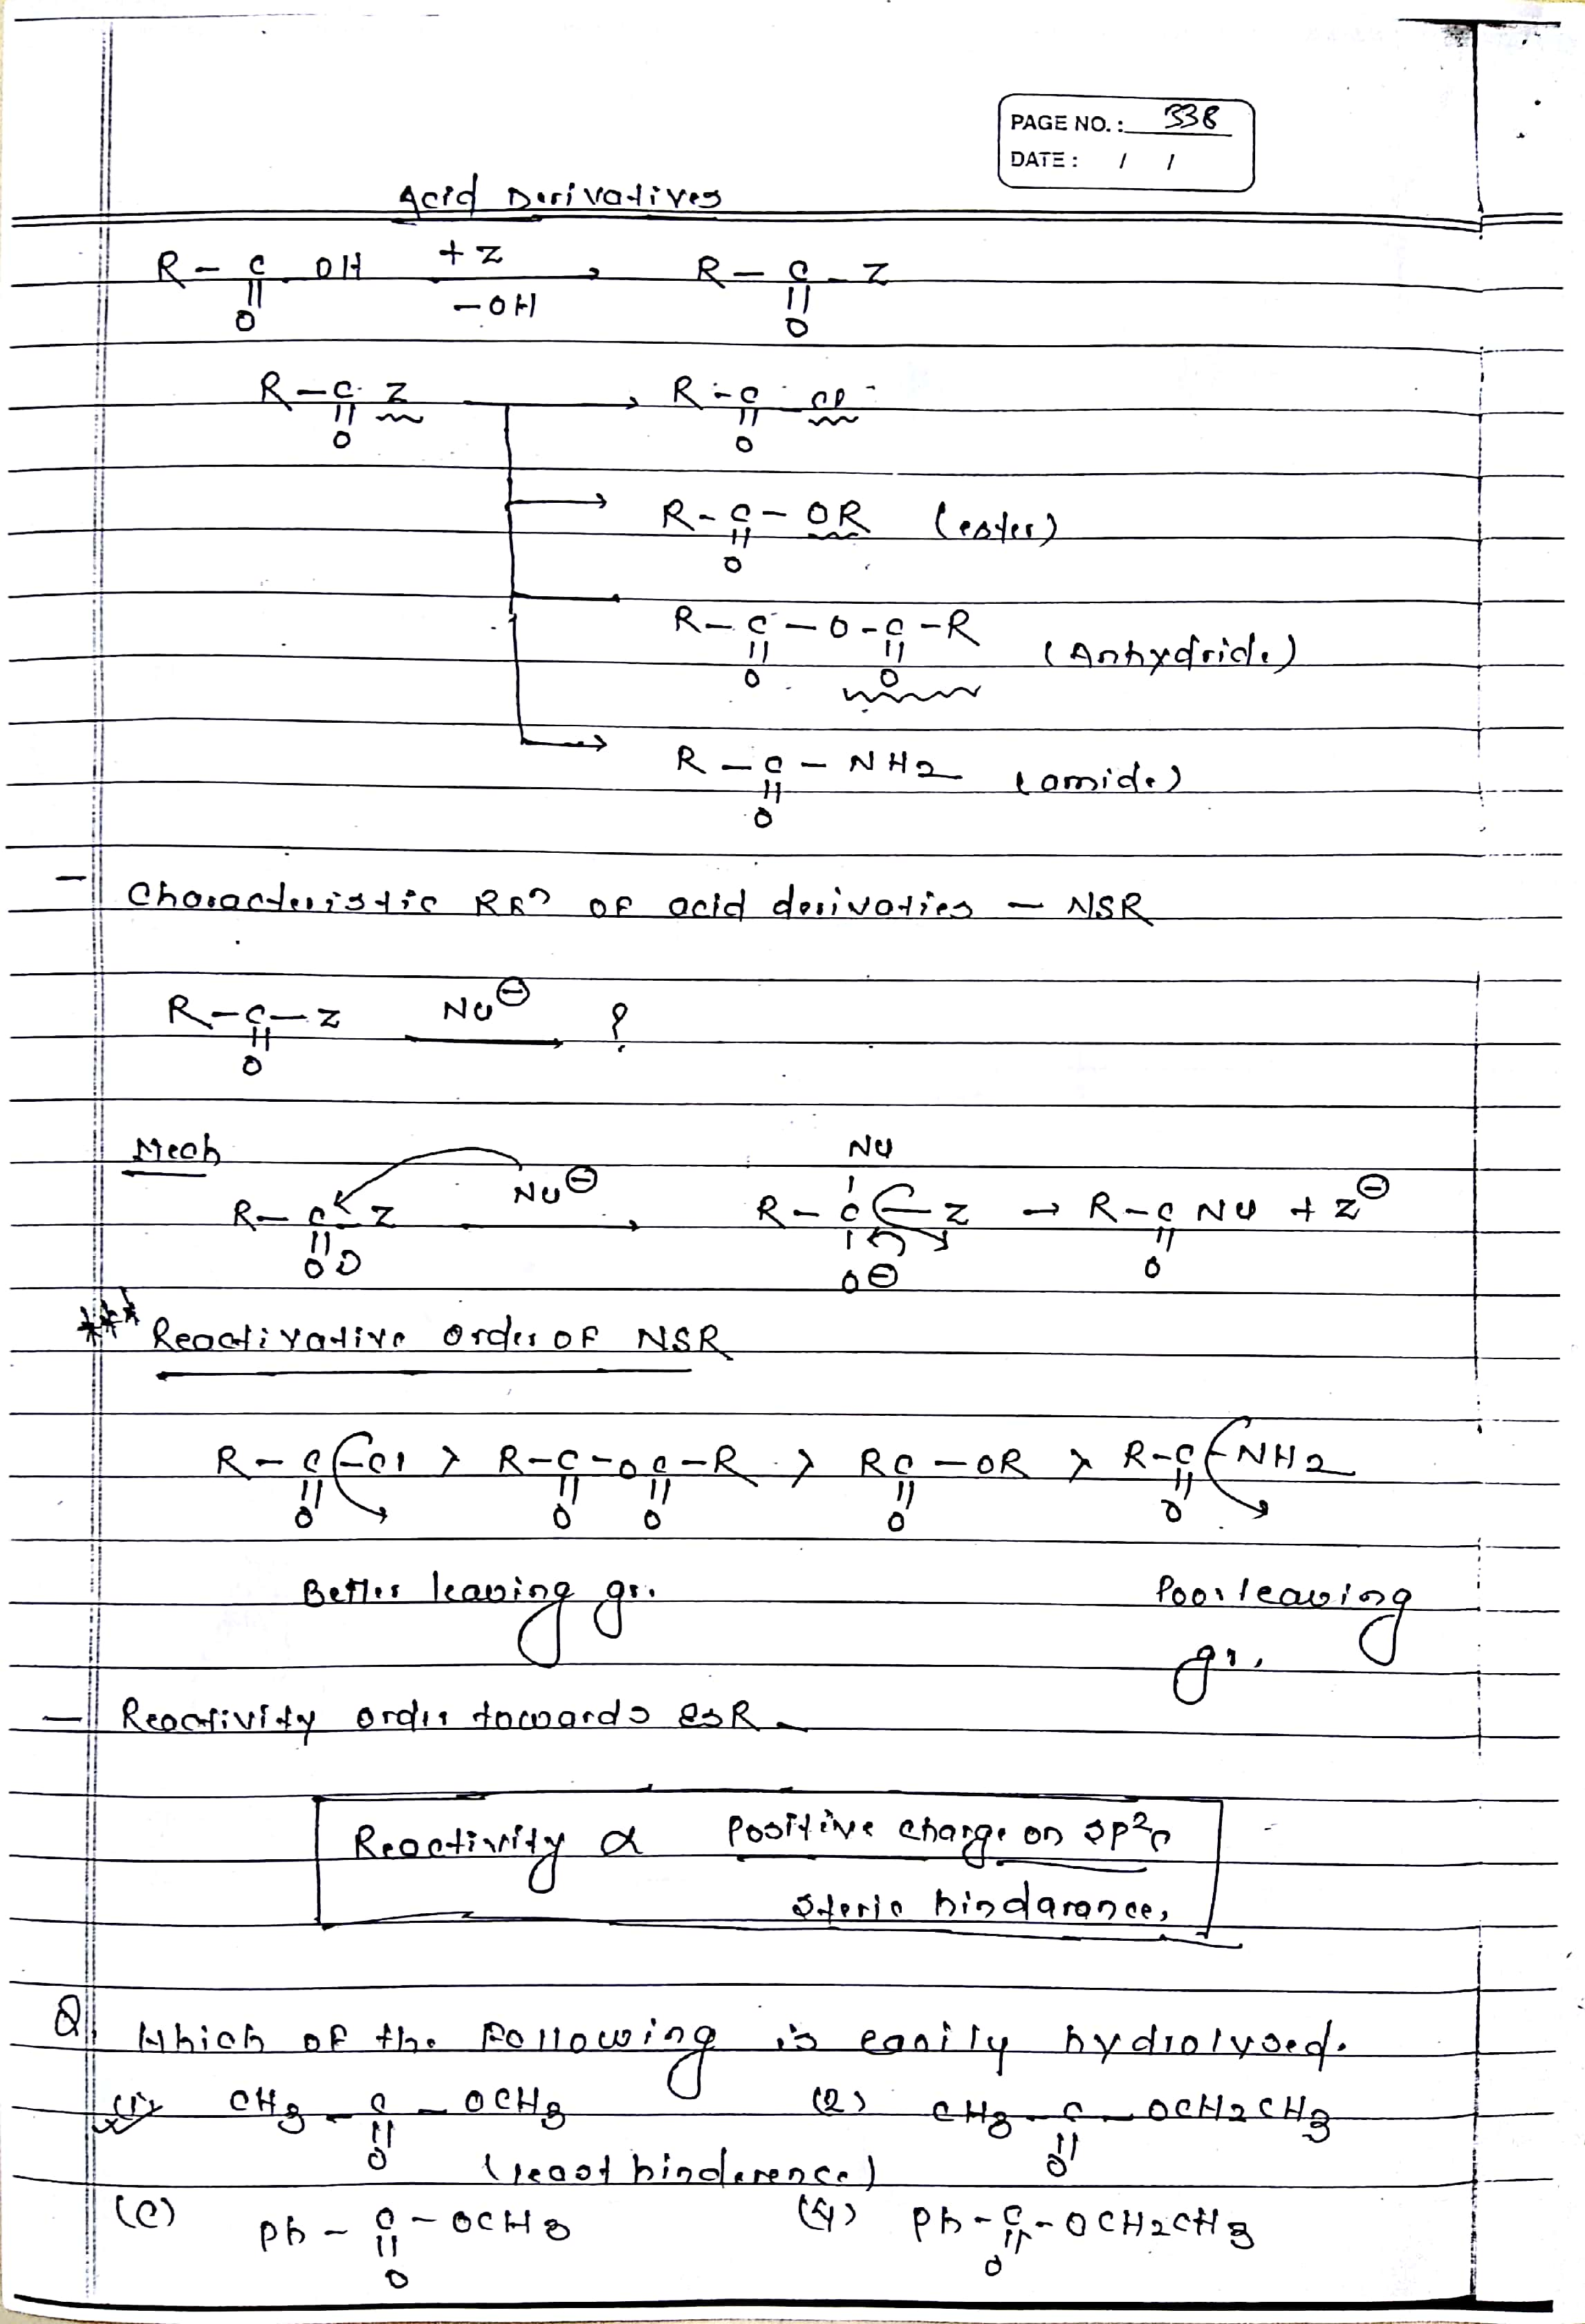 acid derivatives (1)